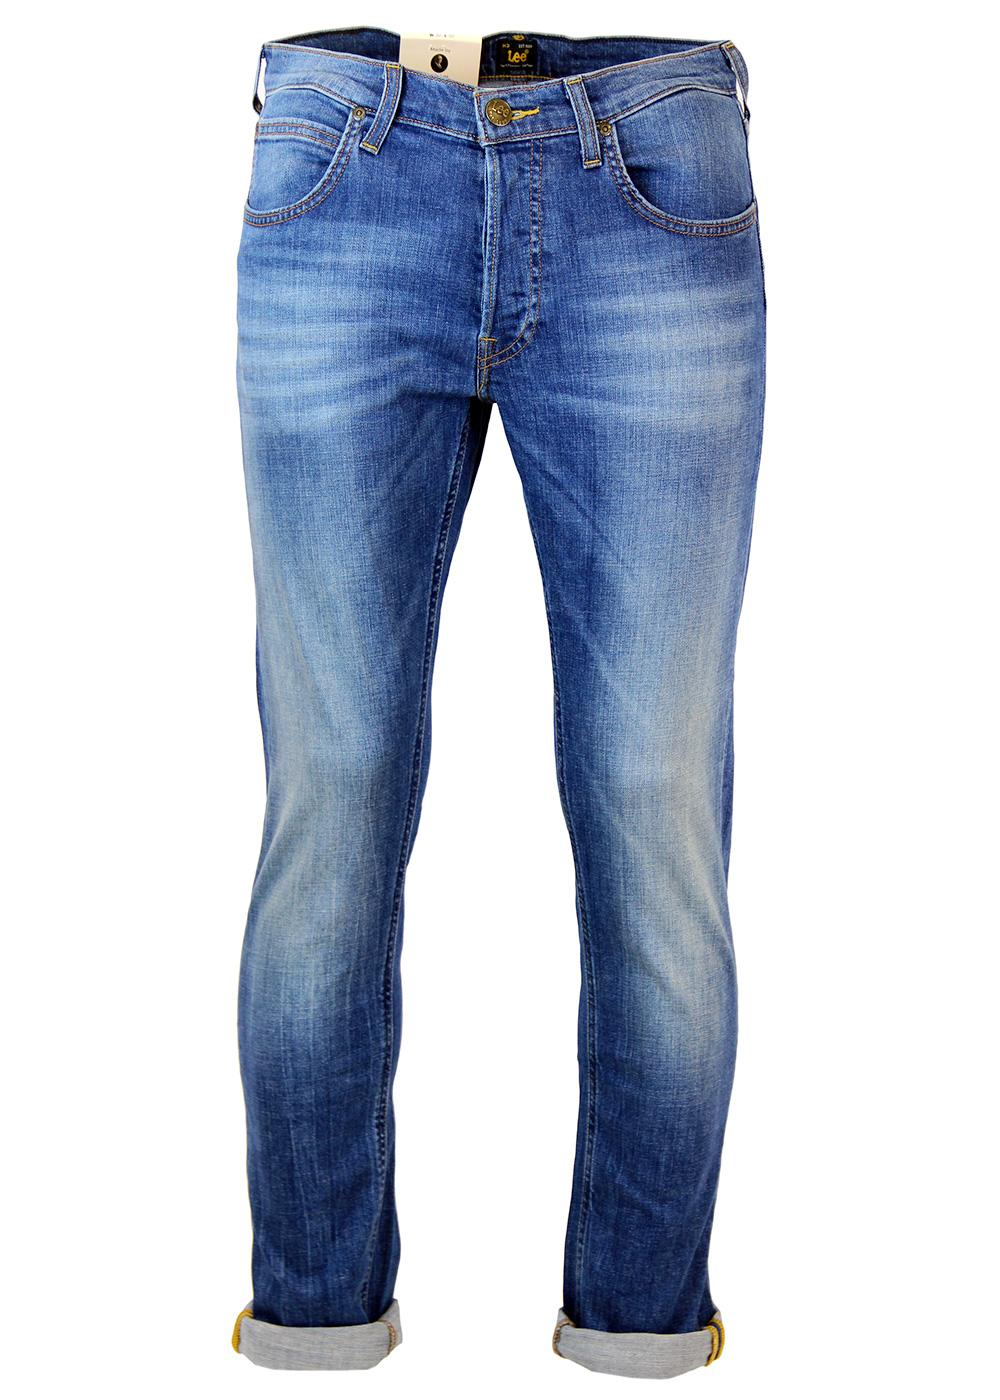 Daren LEE Retro Mod Regular Slim Denim Jeans (AB)